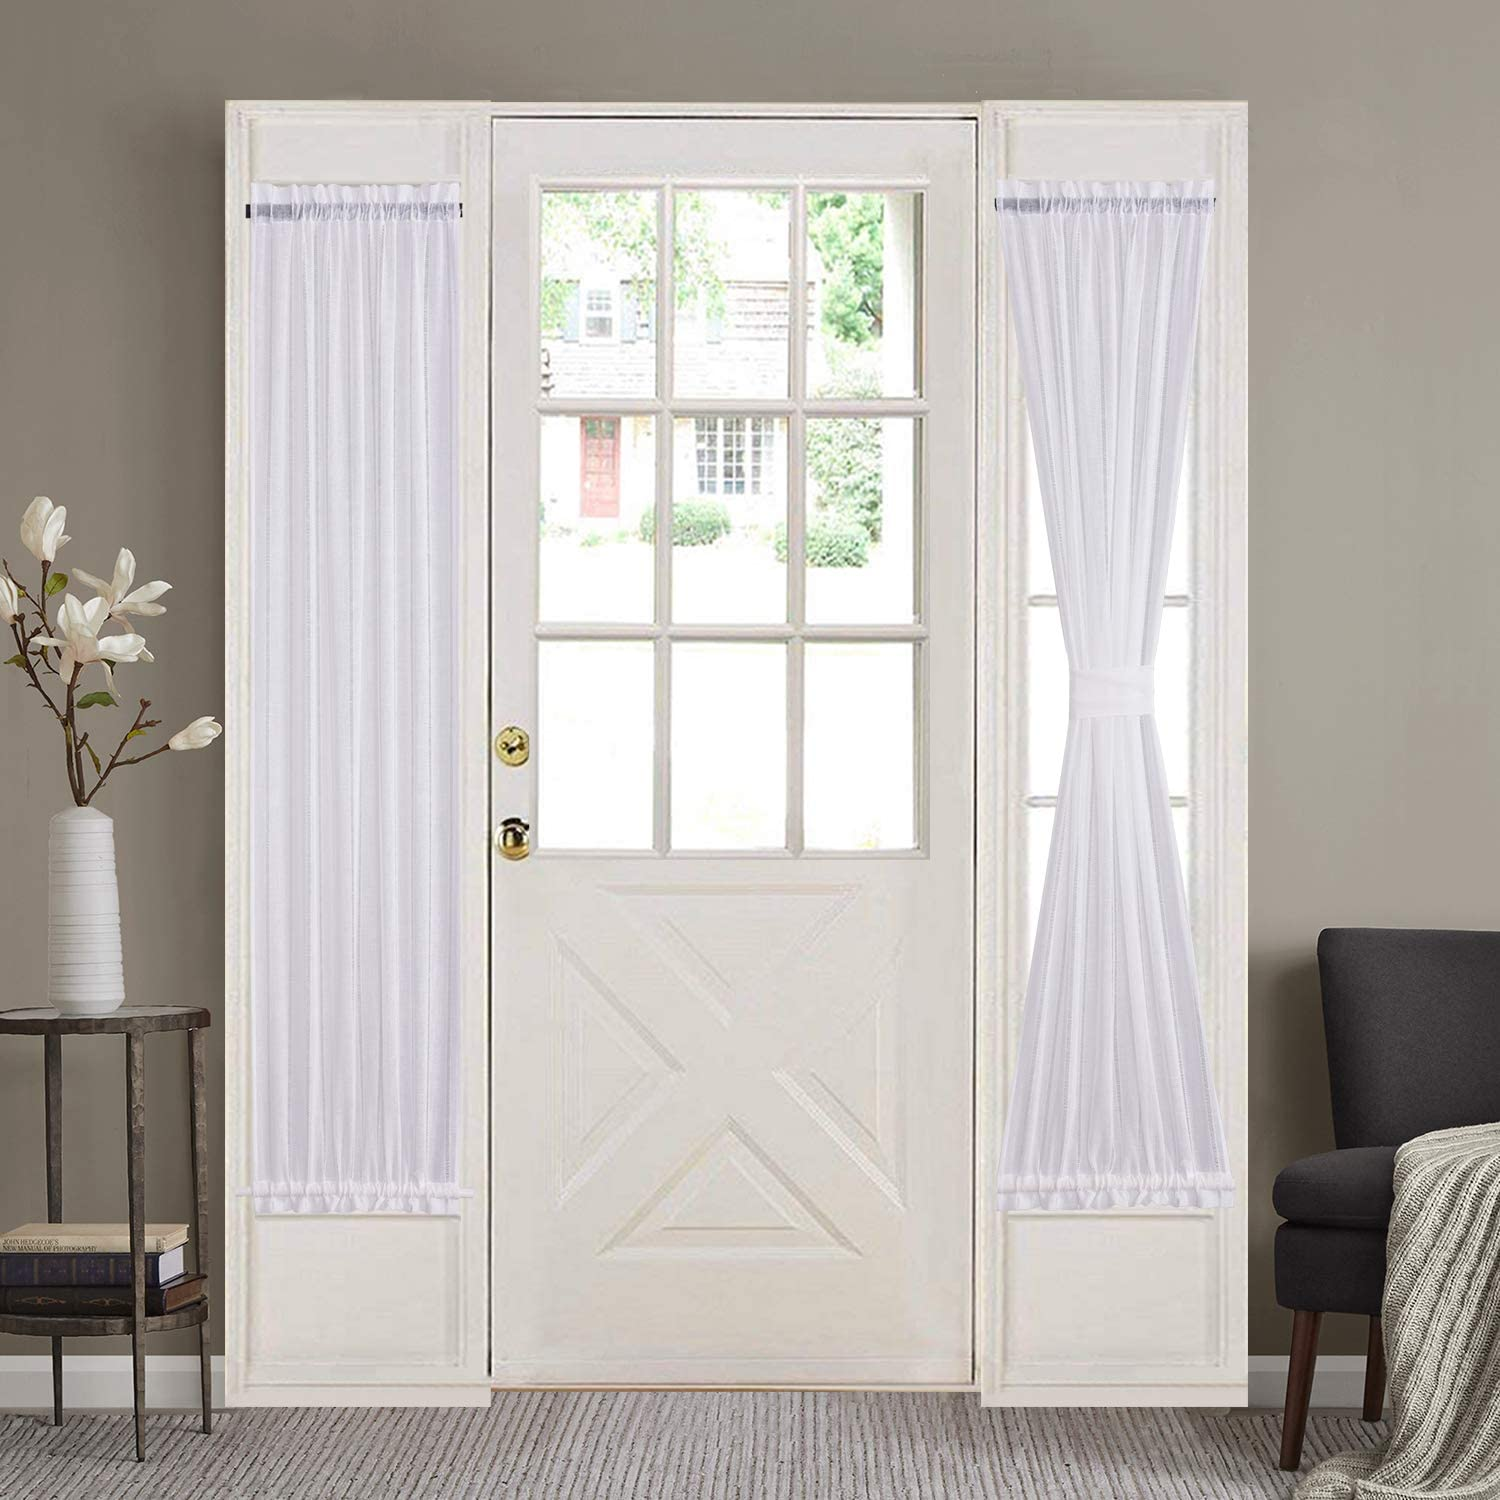 Home Brilliant Side Lights Front Door Curtains Entry Way Decor White Semi Sheer Elegant French Door Panels (30 Width x 72 Length, 2 Panels)